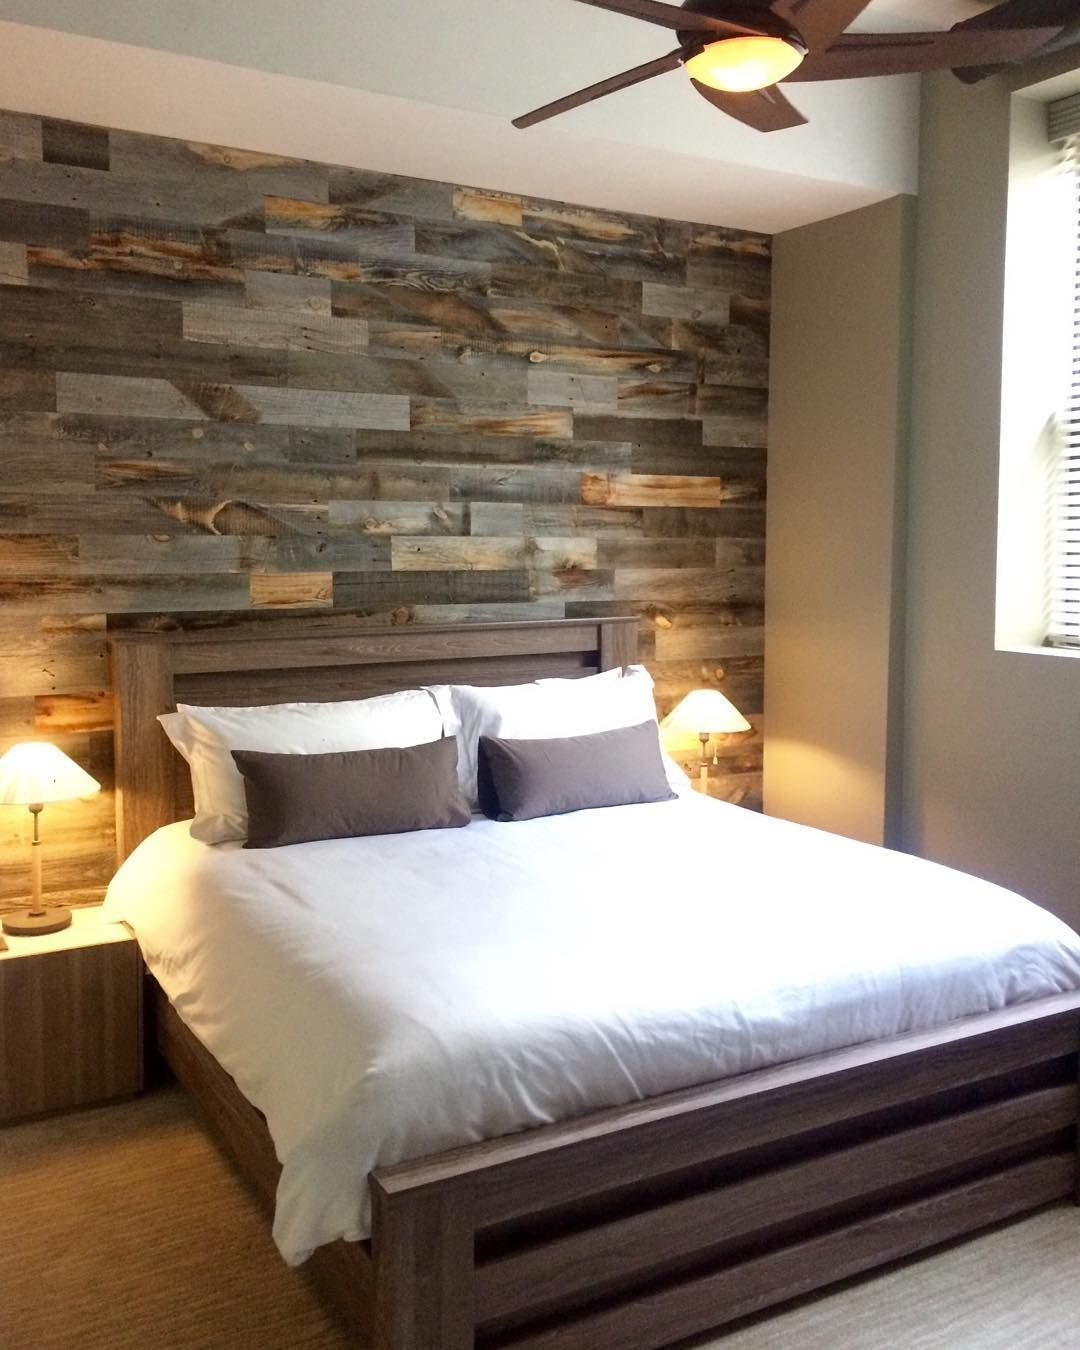 Diy Easy Peel And Stick Wood Wall Decor | Pallets, Square Feet And Throughout Most Current Wall Accents With Pallets (Gallery 15 of 15)